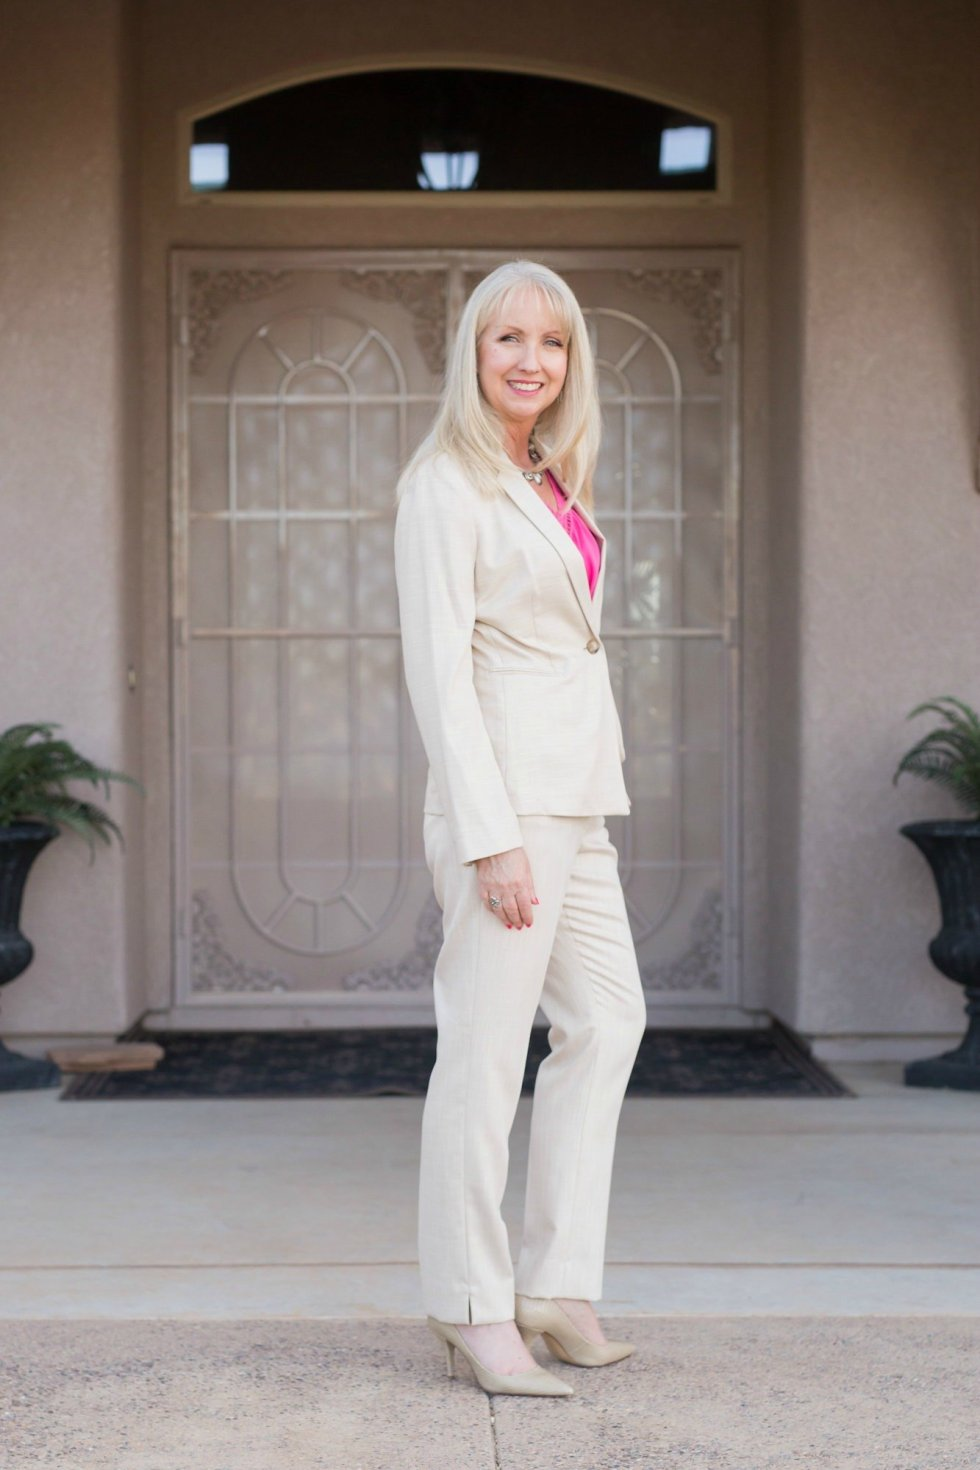 A khaki suit is perfect for the office in warmer months.